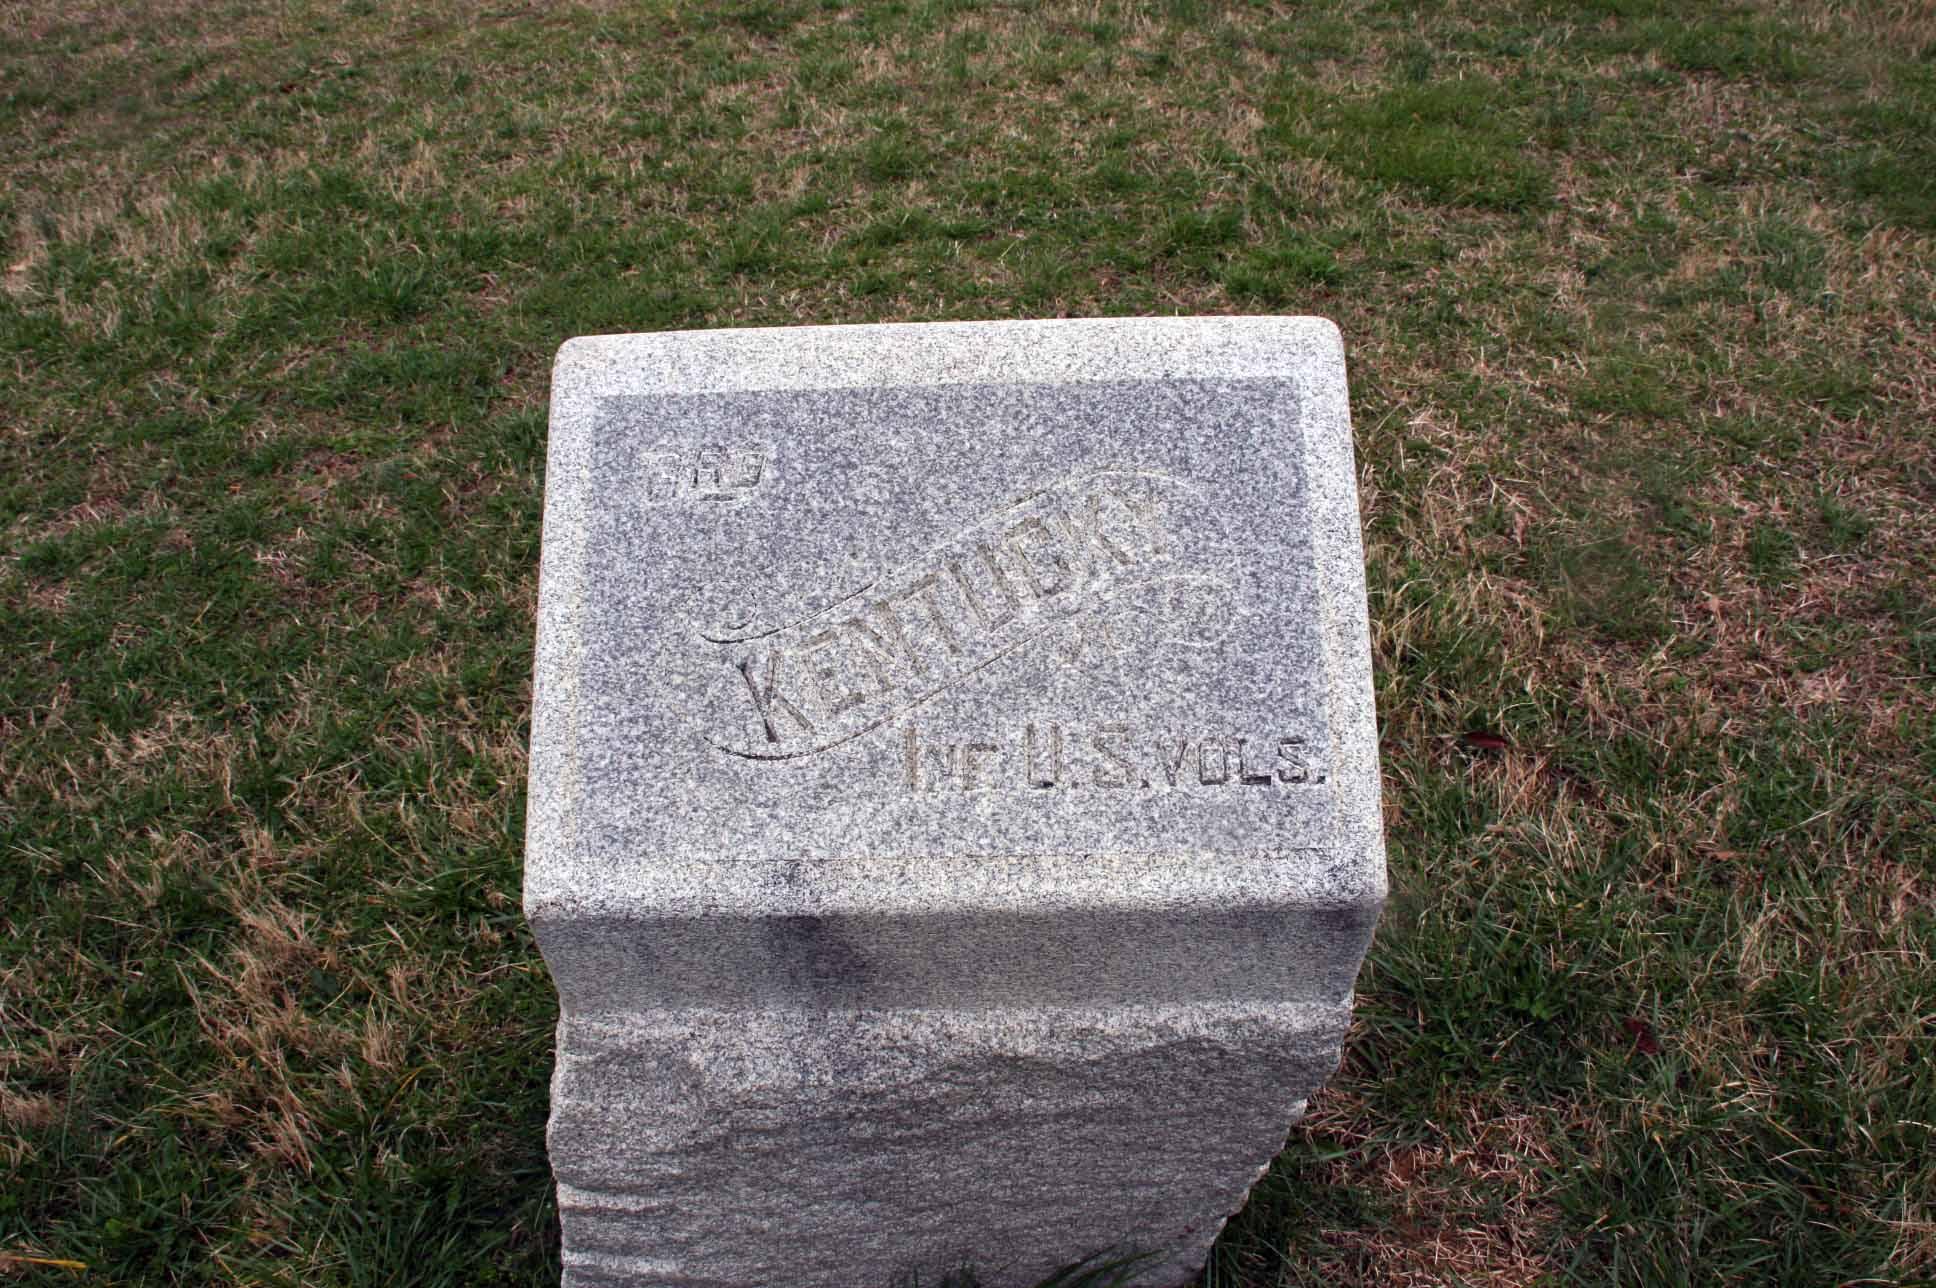 3rd Kentucky Infantry Regiment (US Volunteers) Marker, click photo to enlarge.